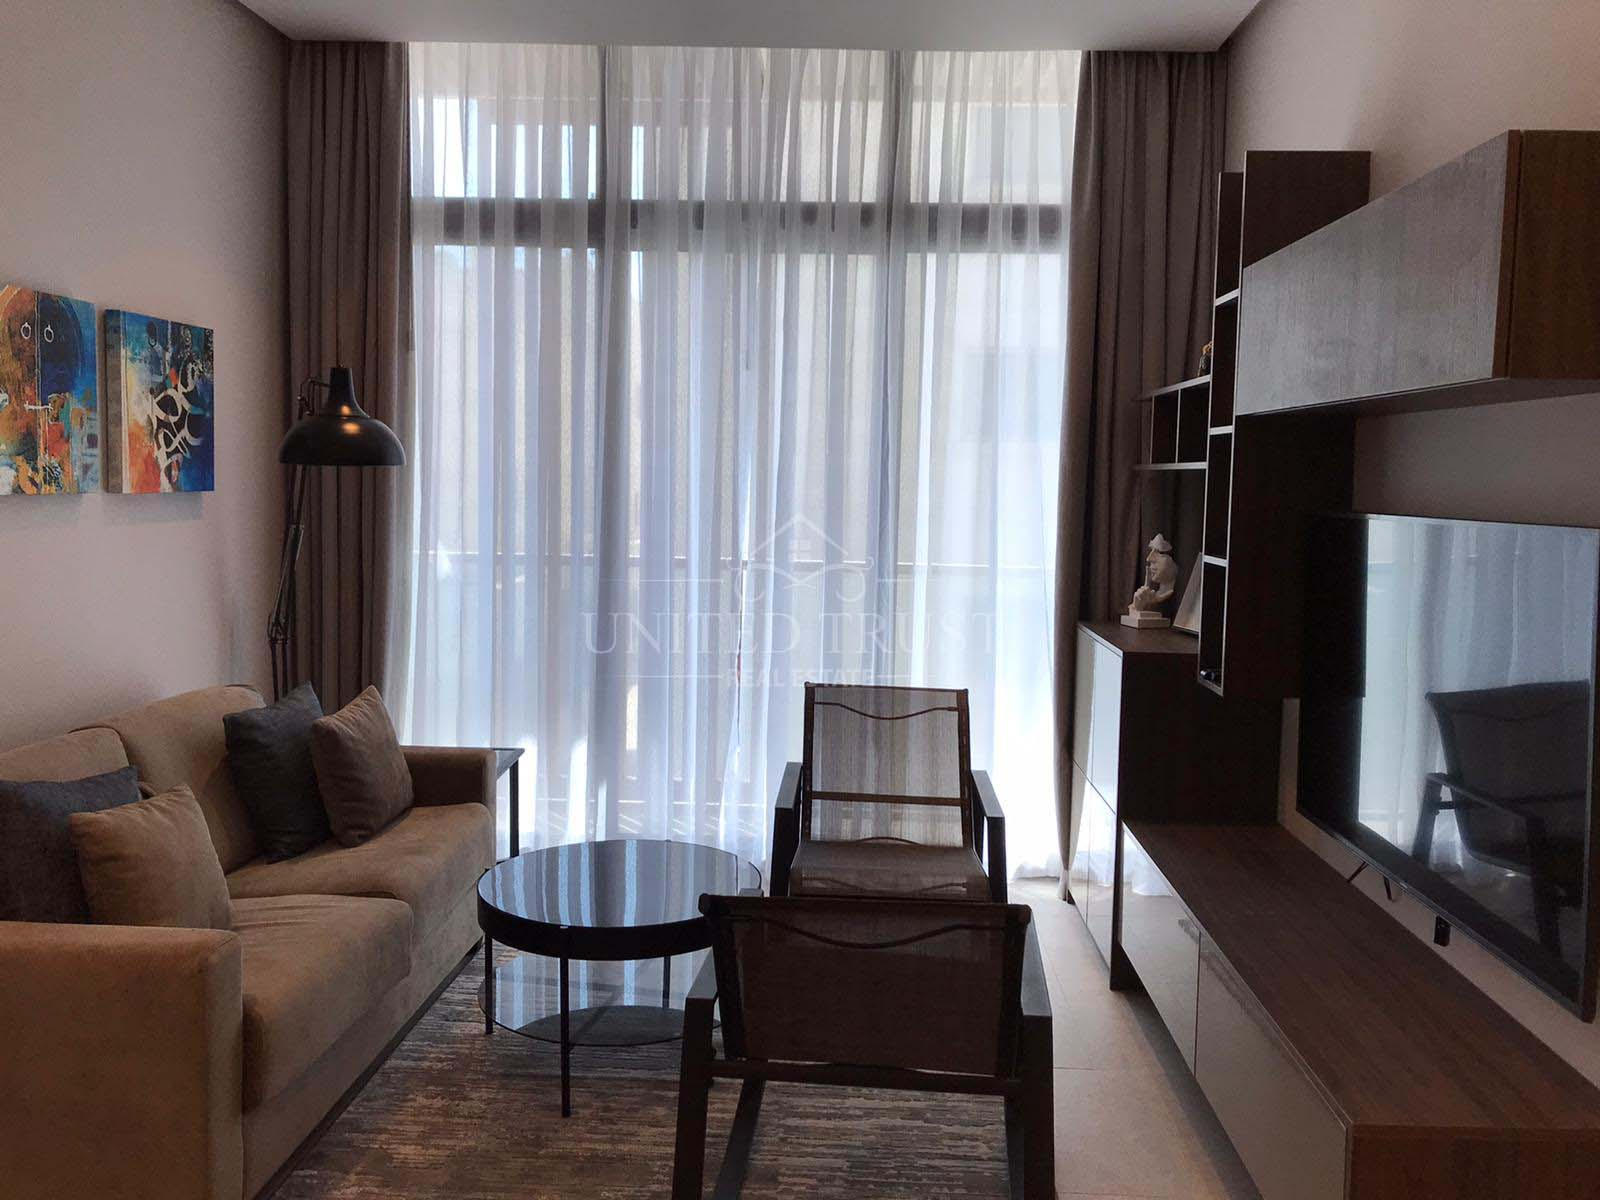 For rent a new furnished 1 bedrooms flat in Saar Ref: SAA-AZ-008